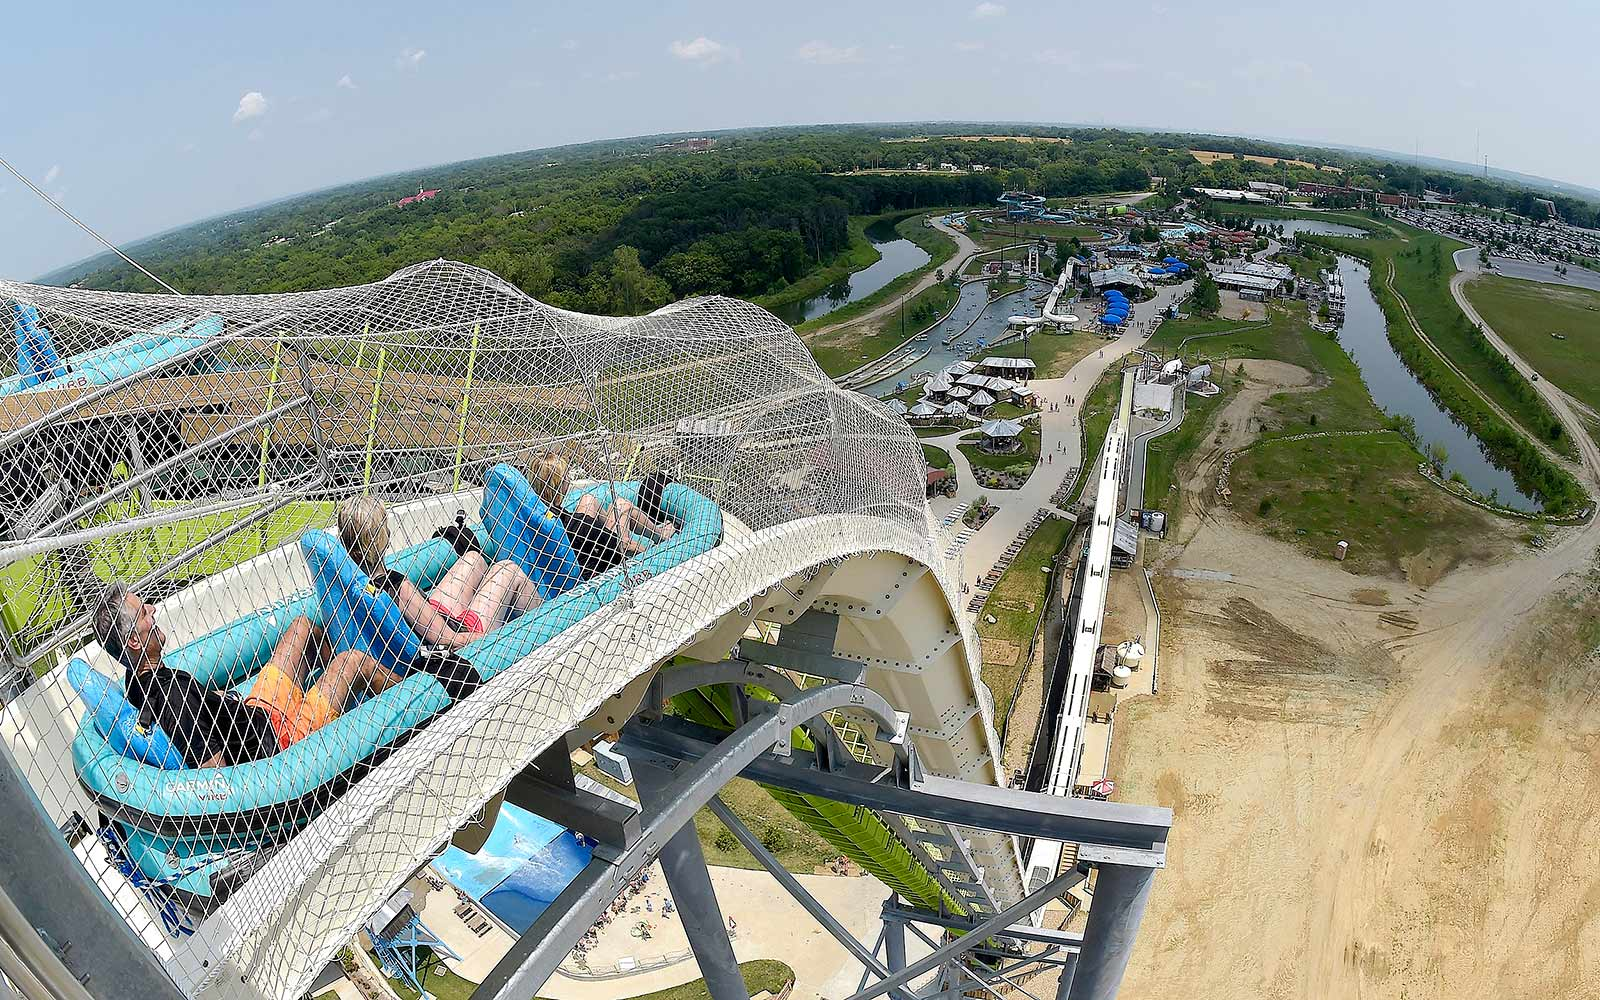 The World's Tallest Water Slide Is Closing Permanently After Tragic Accident